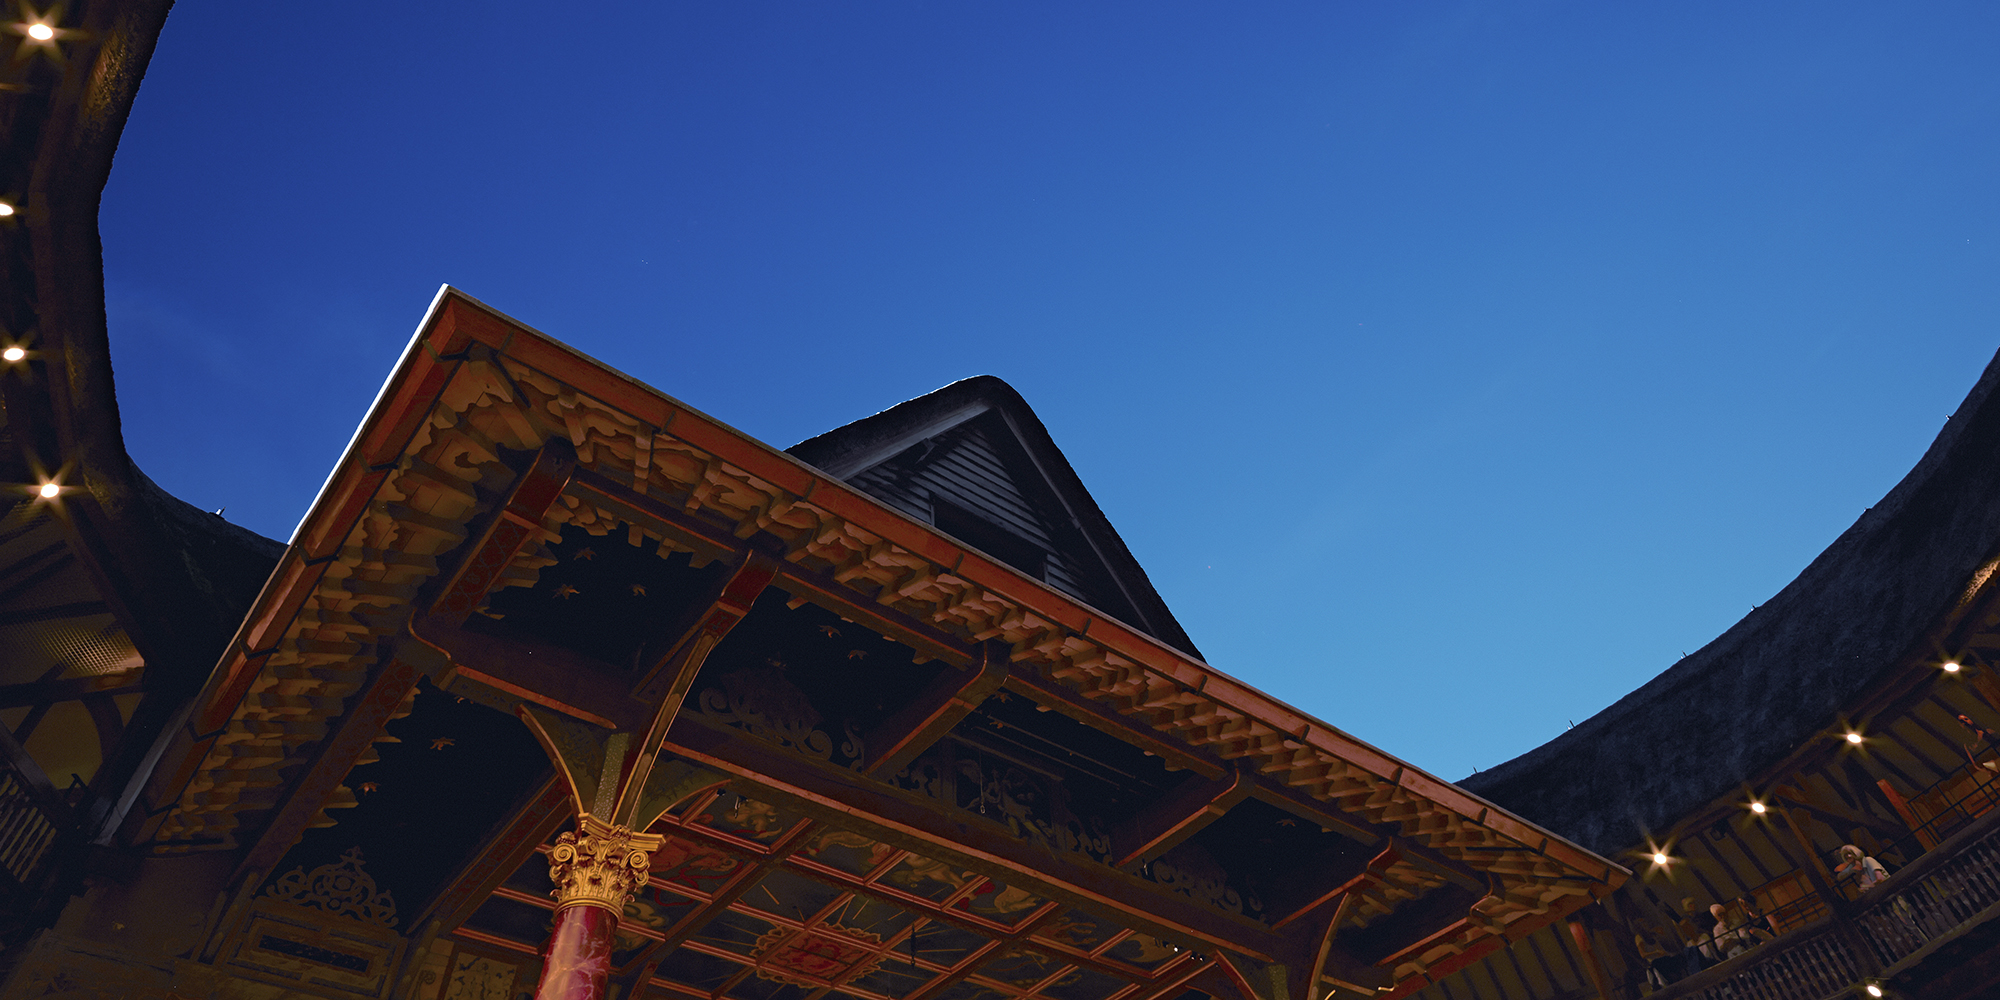 A bright blue evening sky above a circular timber theatre, with pointed thatched roof.